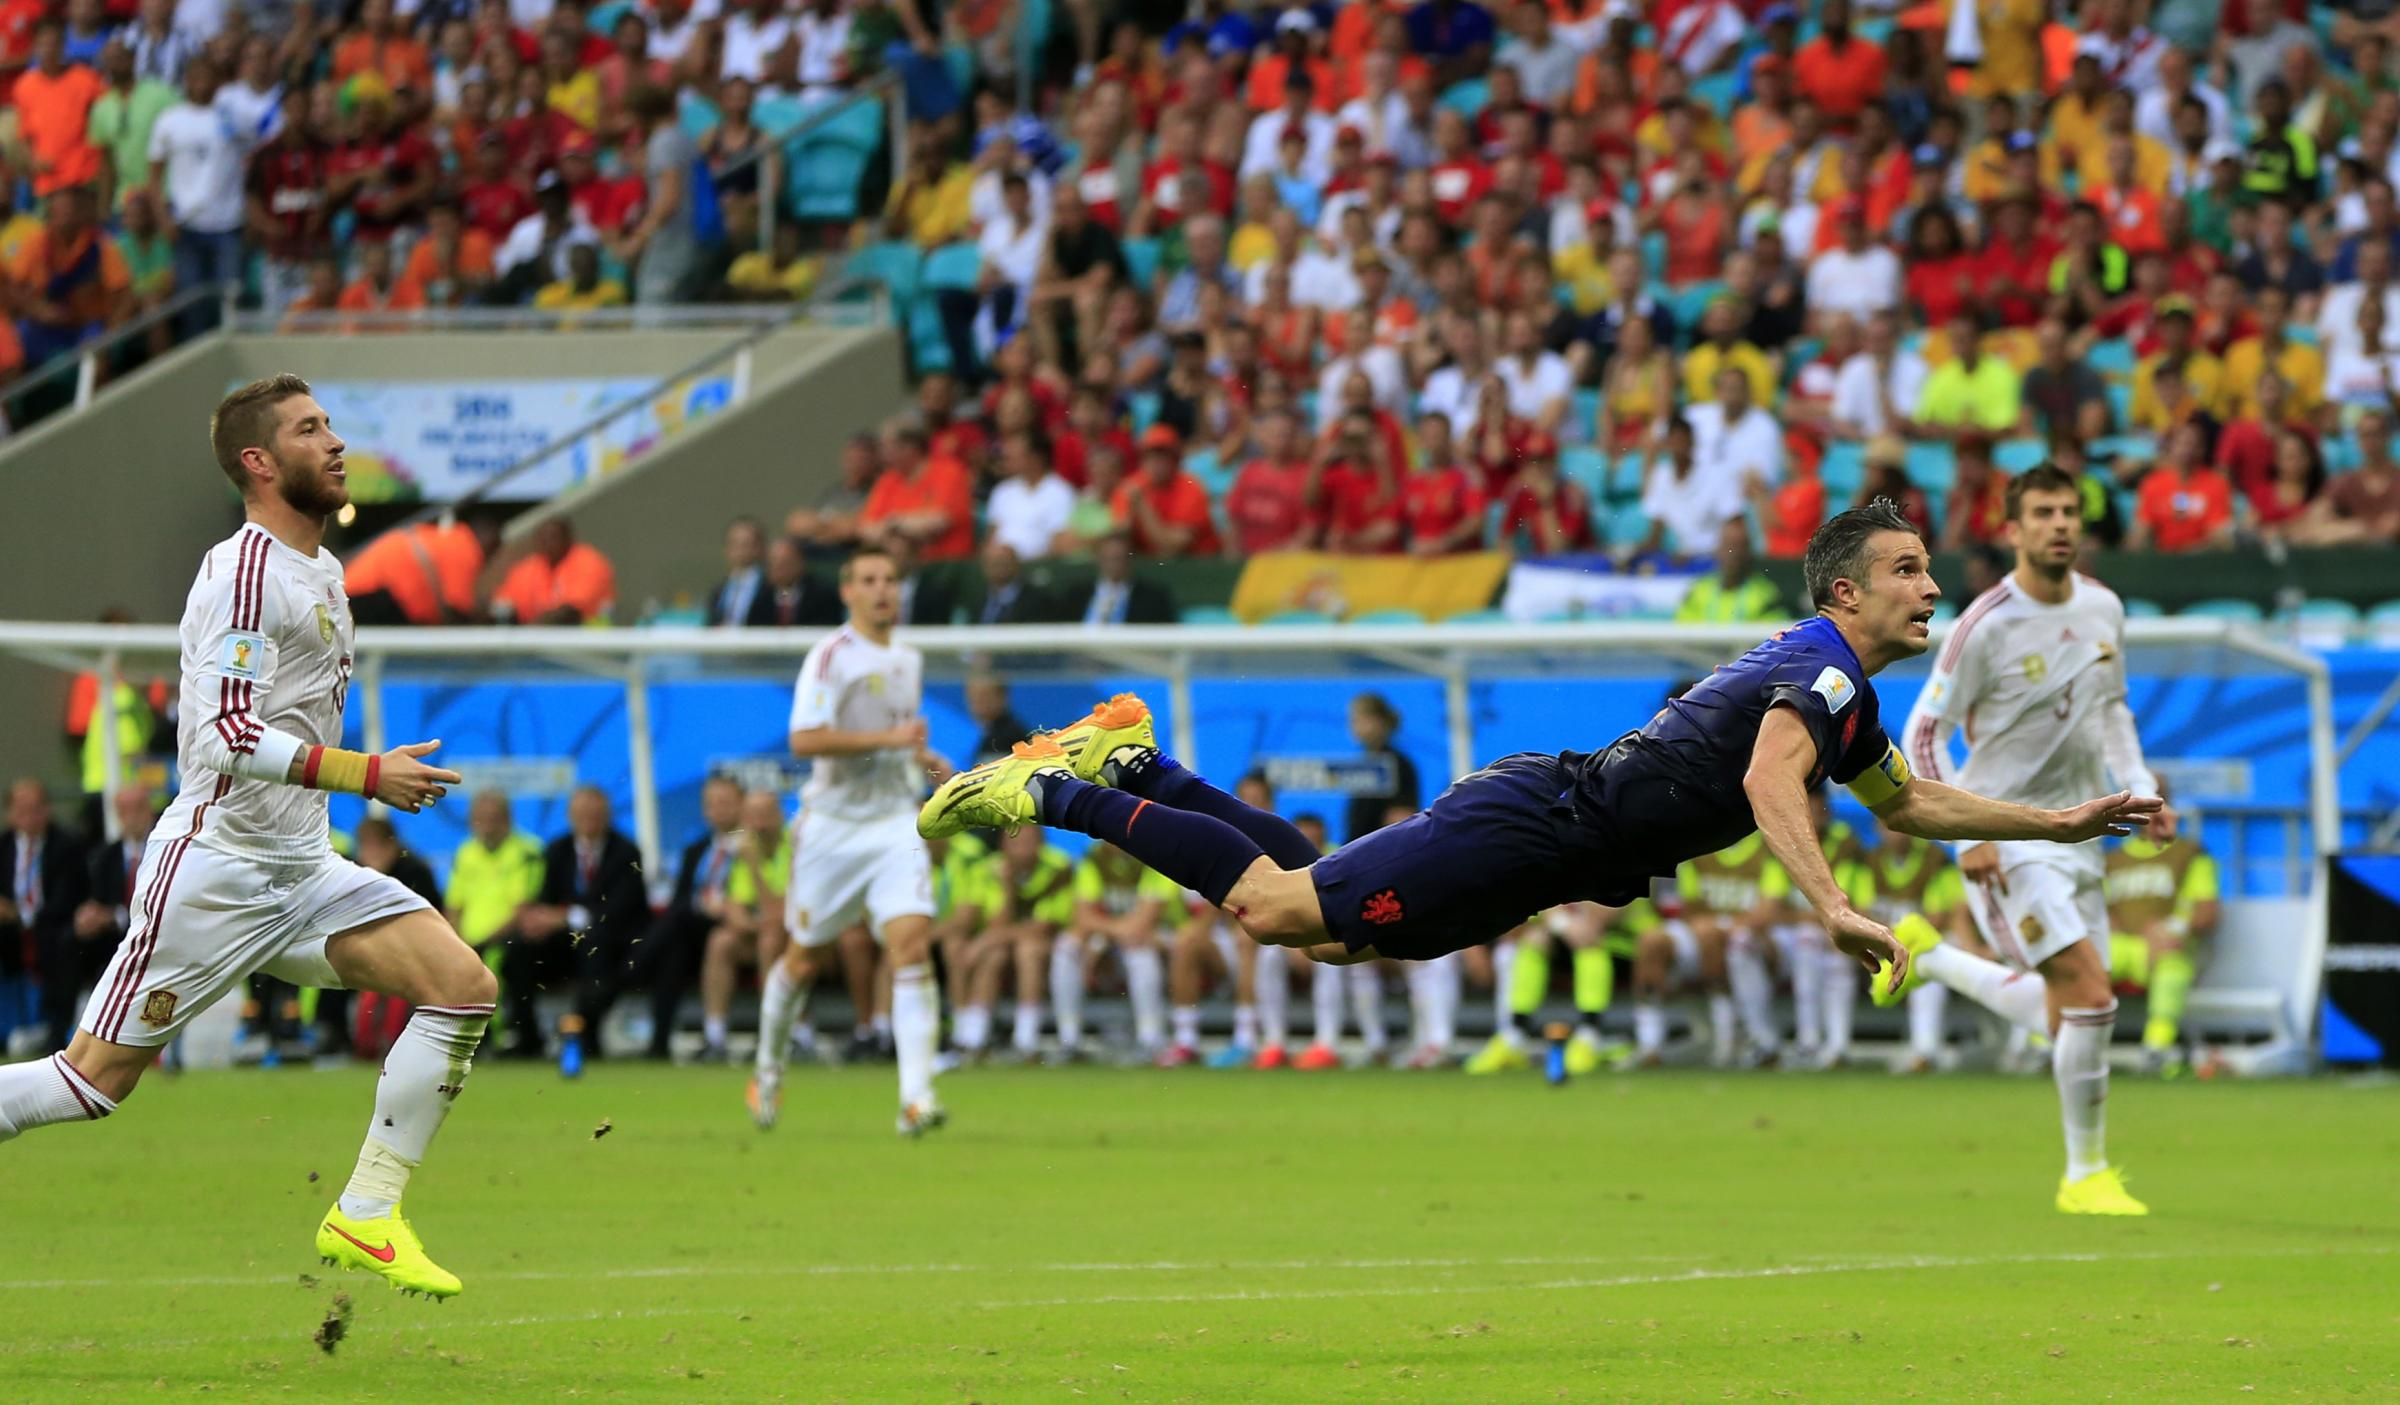 GOLDEN GOAL: Robin van Persie's headed goal against Spain was one of the moments of the World Cup so far